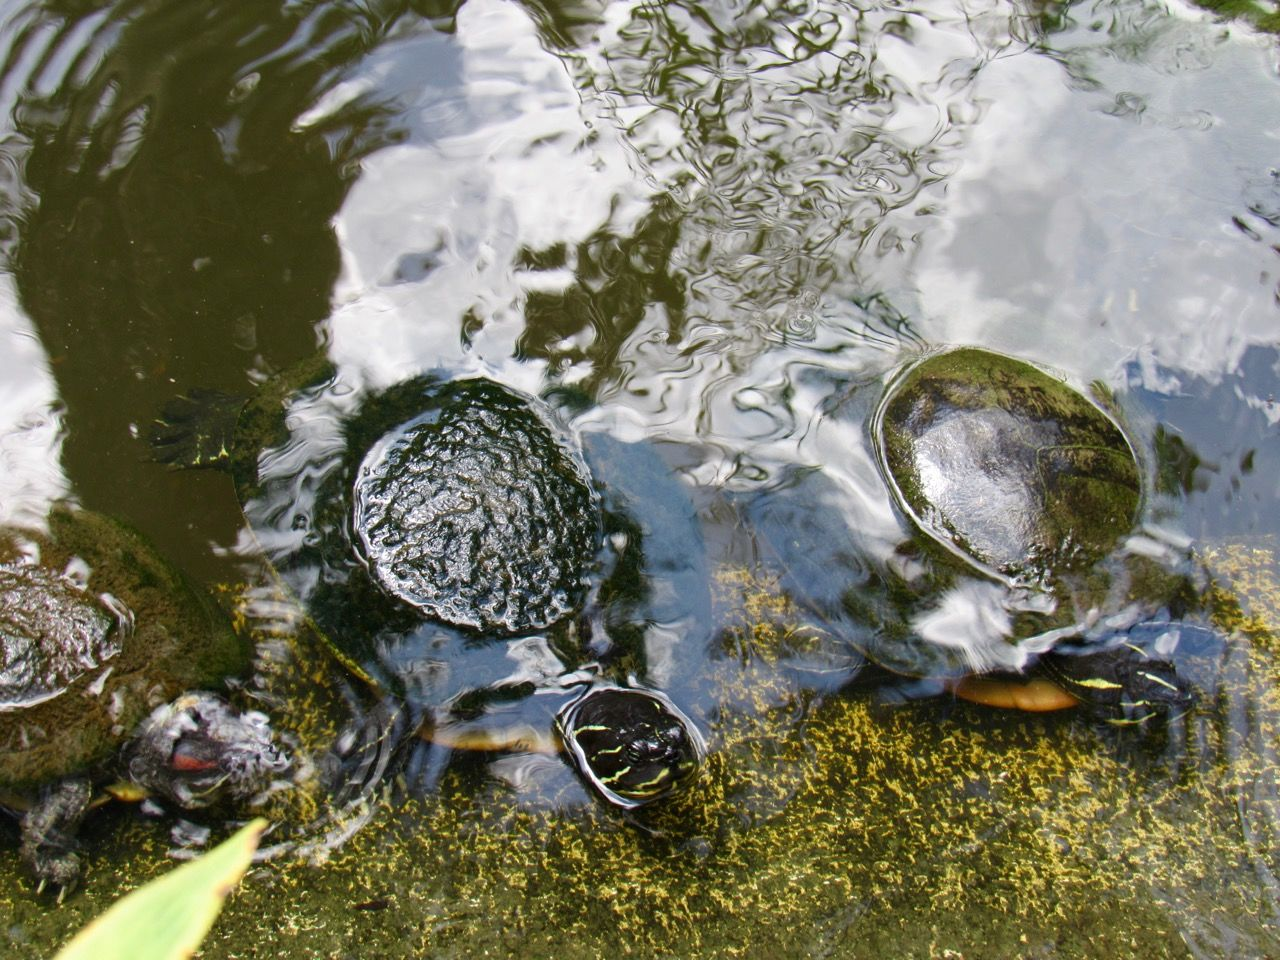 Tortues aux Flamingo gardens de Davie en Floride